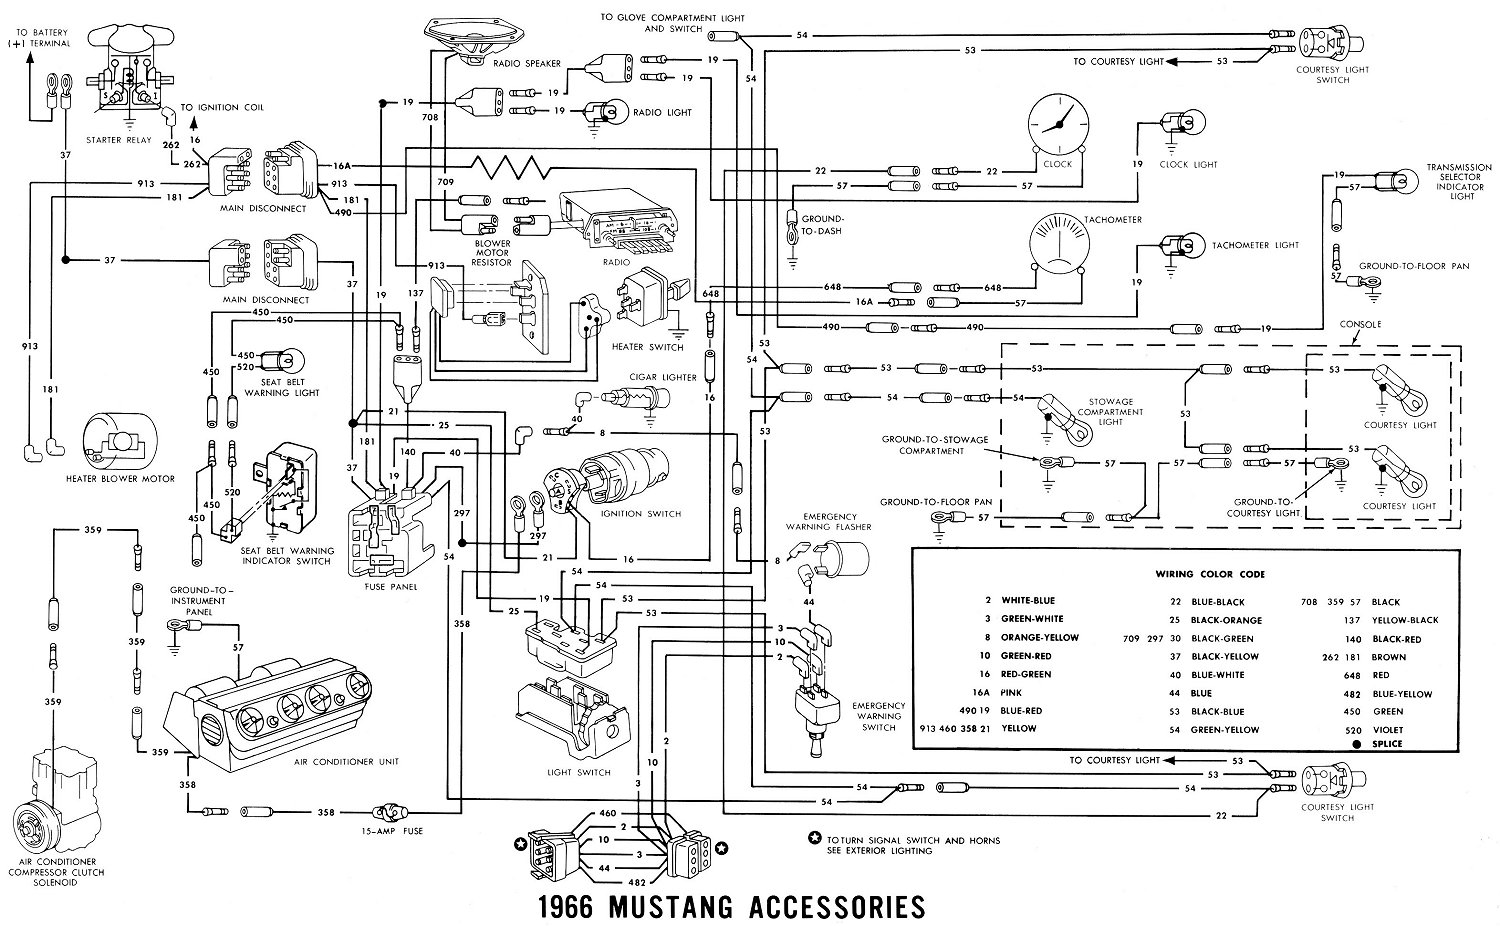 1966 Mustang Wiring Diagrams on jeep neutral safety switch location